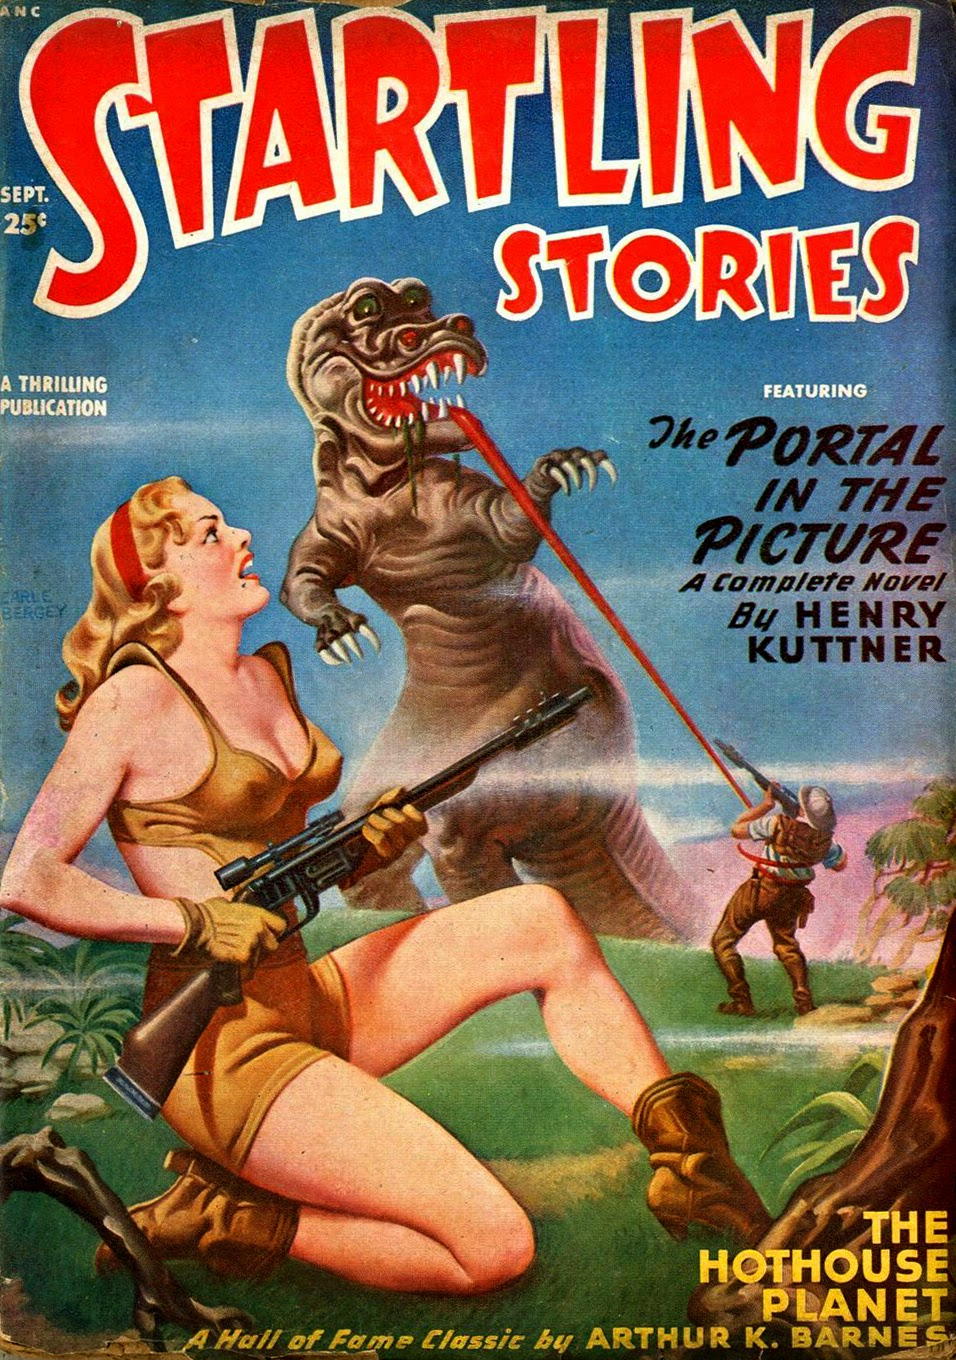 http://pulpcovers.com/the-hothouse-planet-1949/